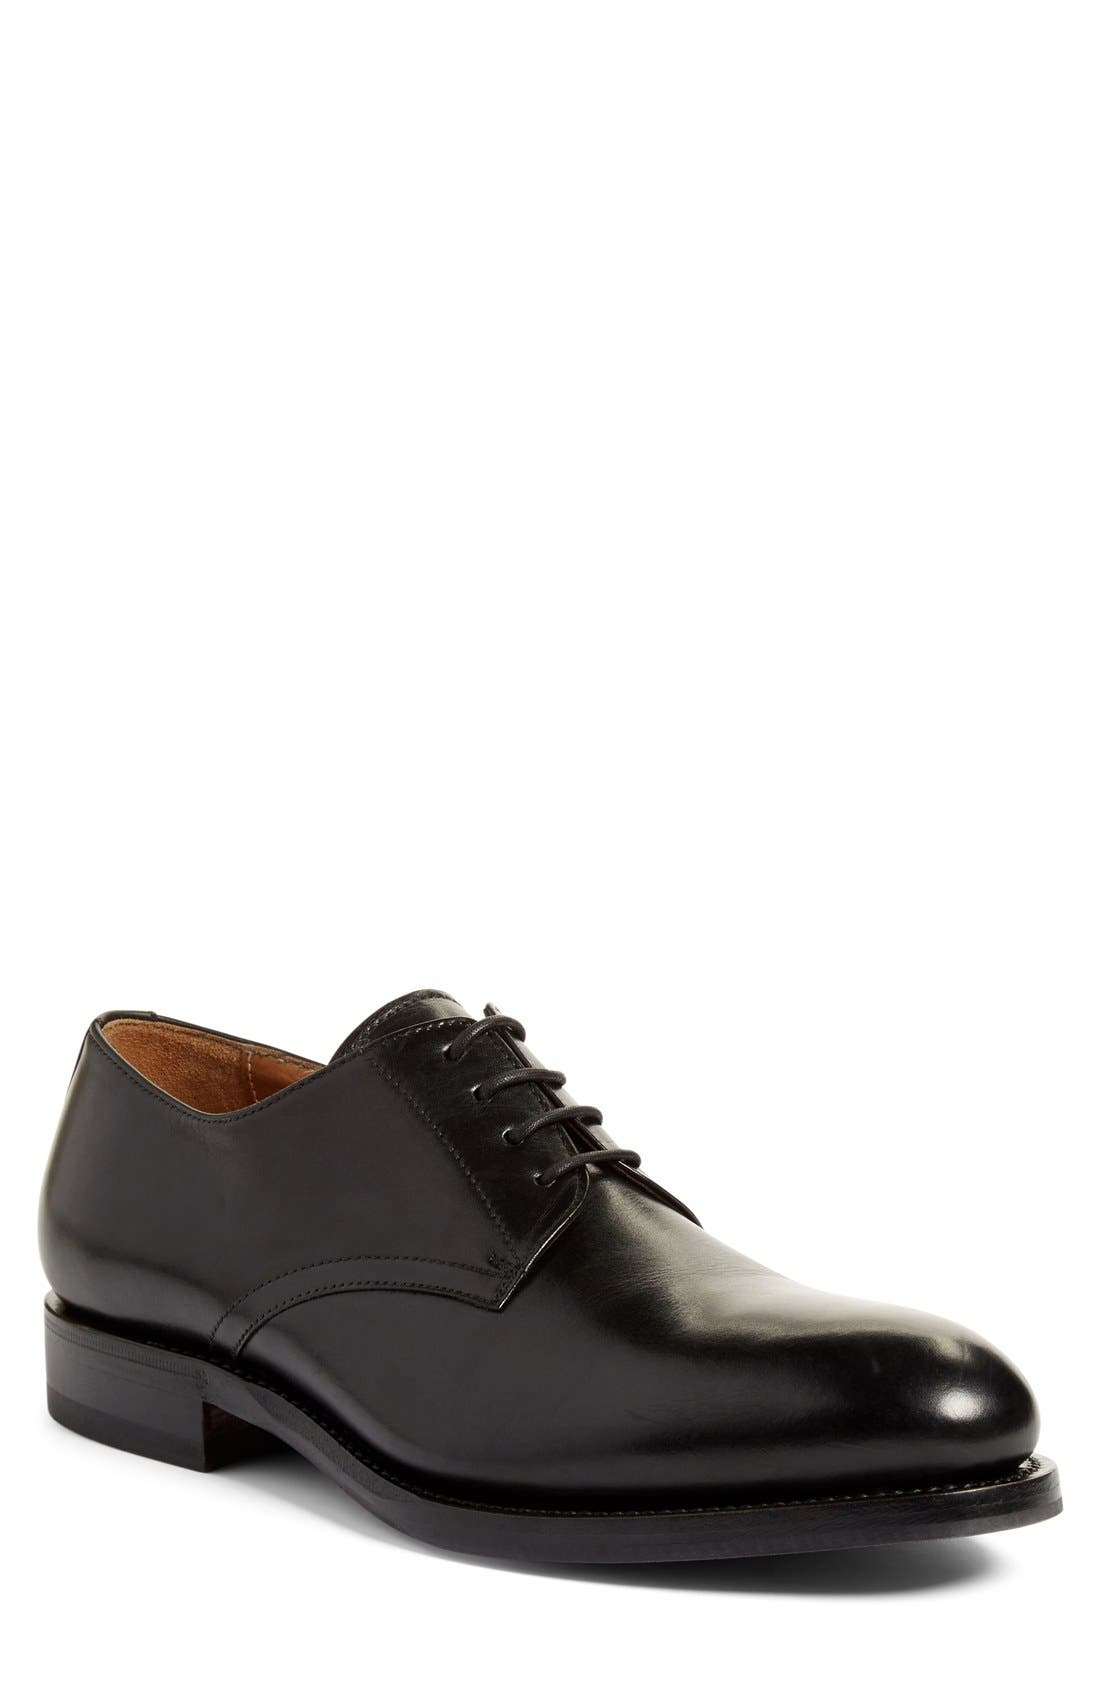 Main Image - Aquatalia 'Vance' Plain Toe Derby (Men)